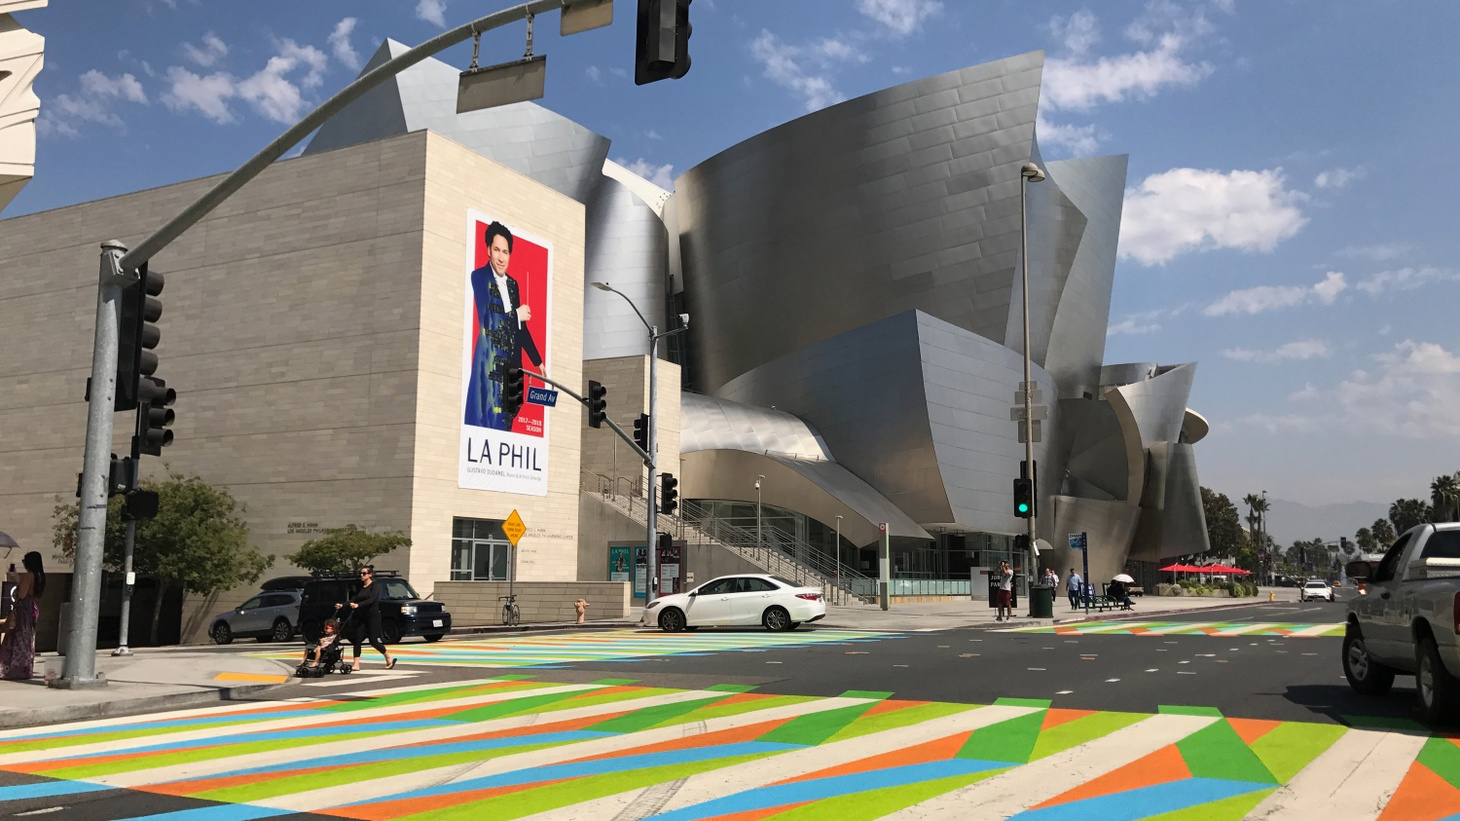 Four crosswalks in front of the Broad in downtown Los Angeles got a colorful paint job this weekend. Local high school students helped paint intersecting diagonal stripes in a design created by 94-year-old Venezuelan artist Carlos Cruz-Diez. The Broad invited him to re-imagine the crosswalks as part of the city-wide Pacific Standard Time: LA/LA.